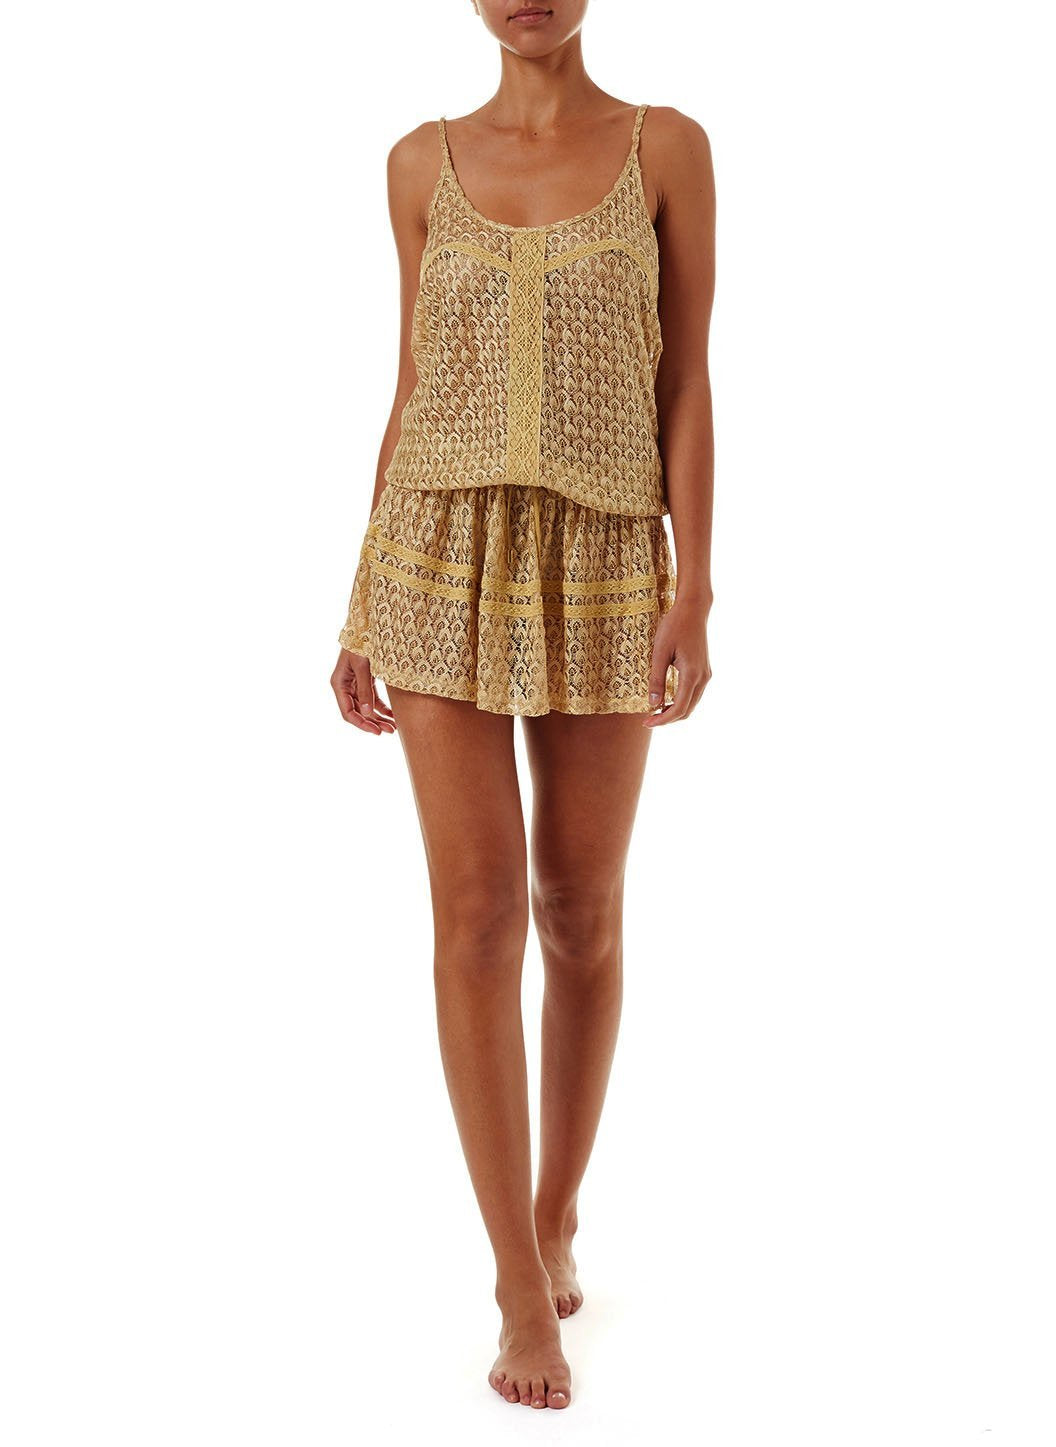 khloe gold crochet overtheshoulder short beach dress 2019 F